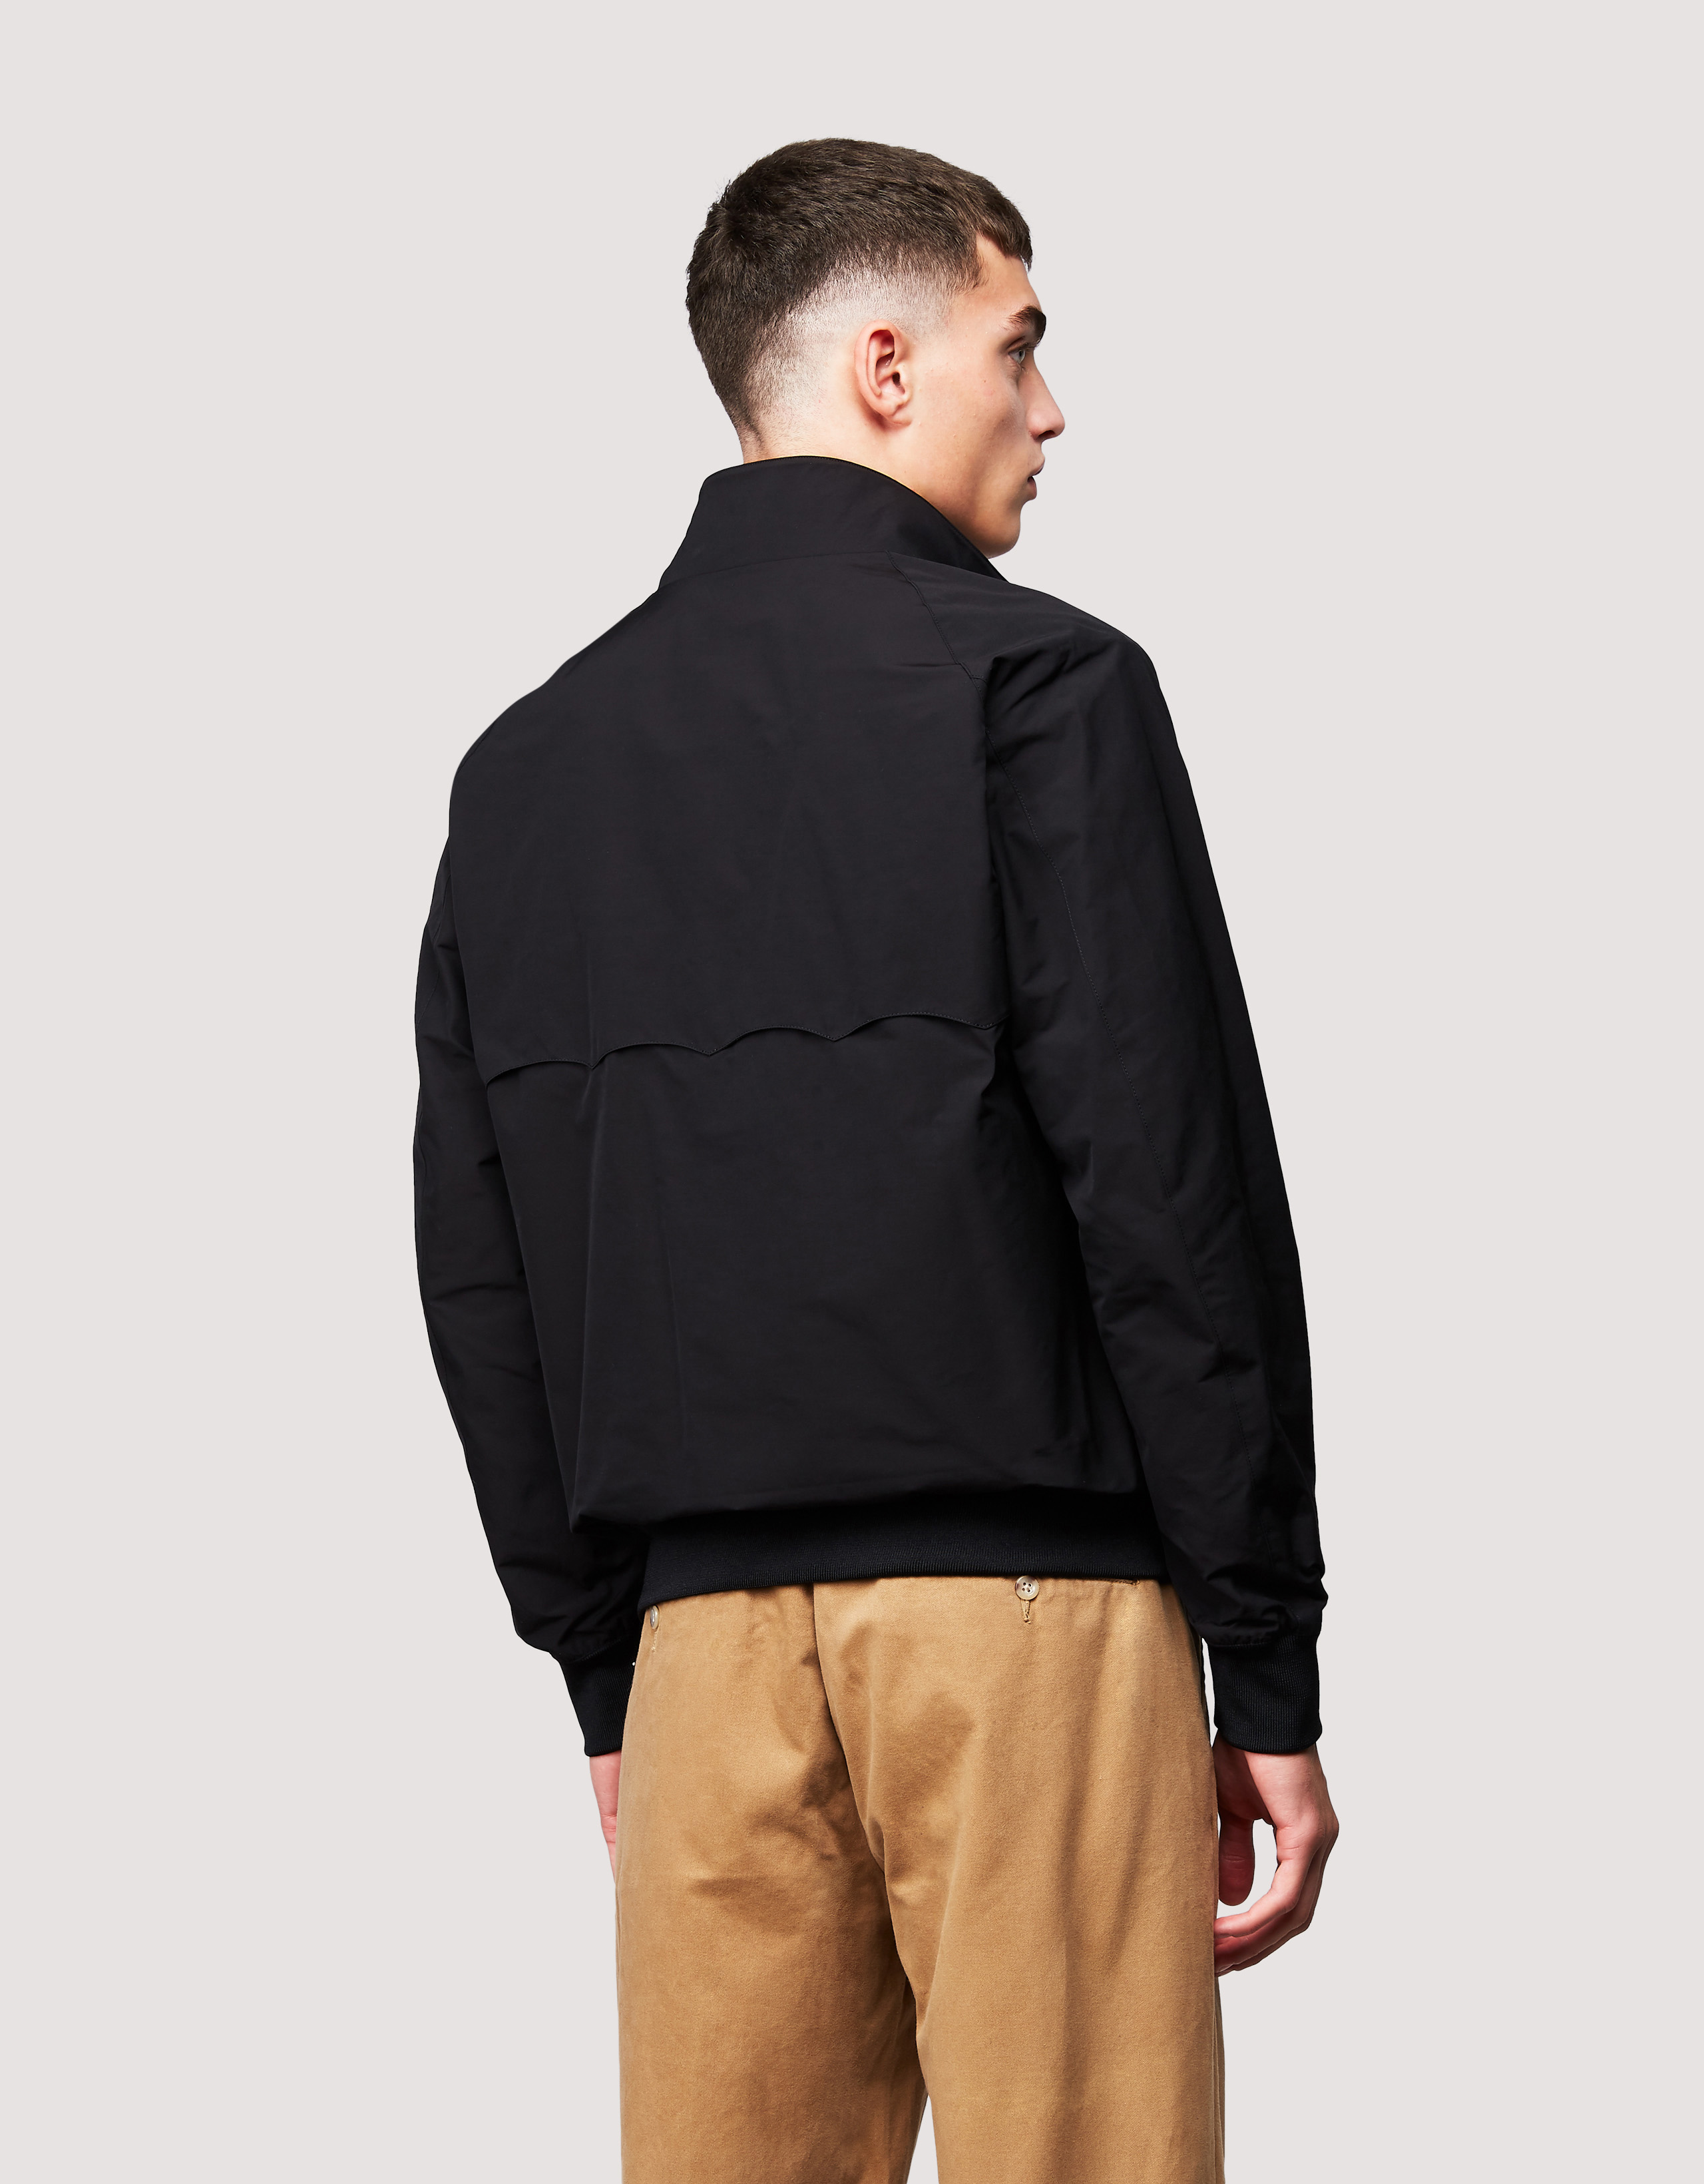 BARACUTA G9 Archive Black 3